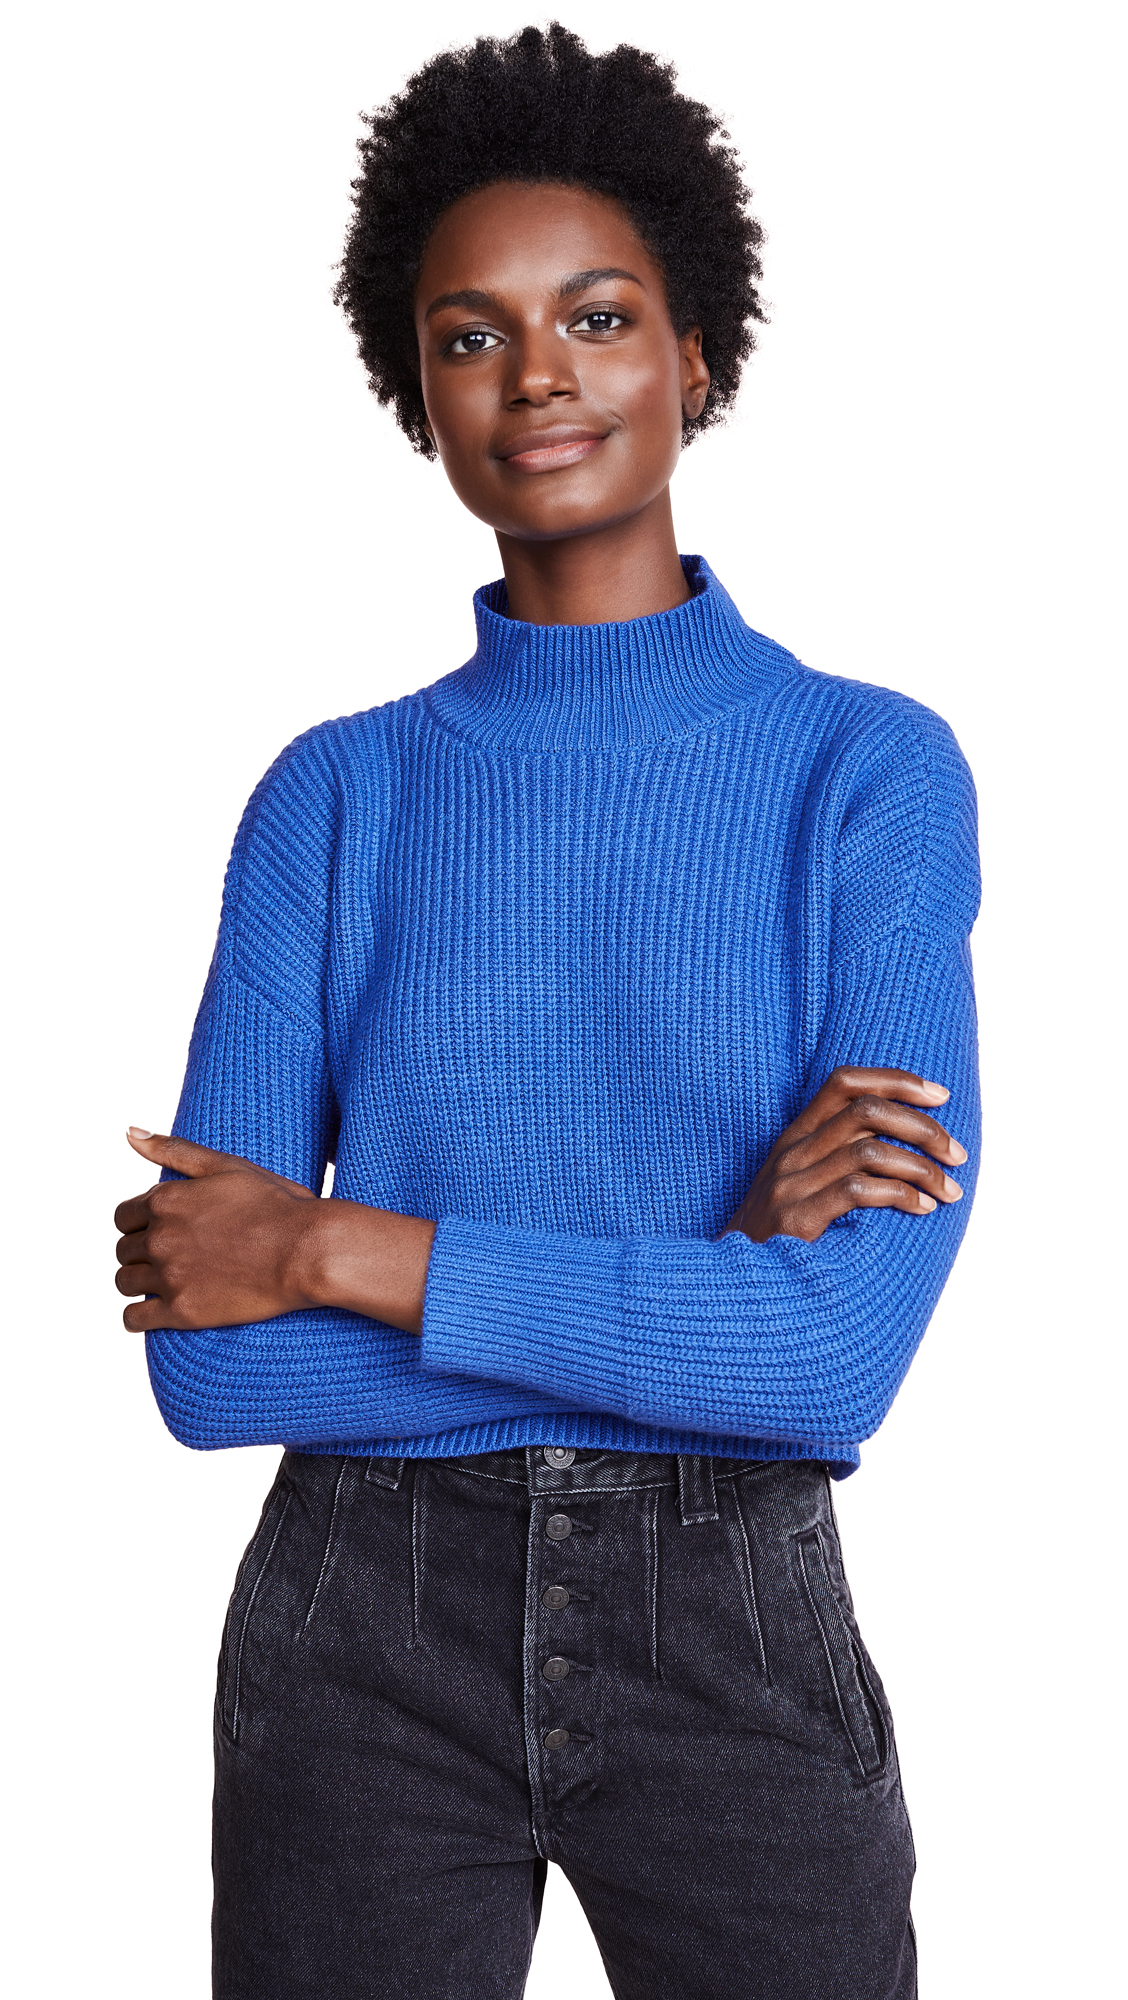 KNOT SISTERS Libby Sweater in Royal Blue